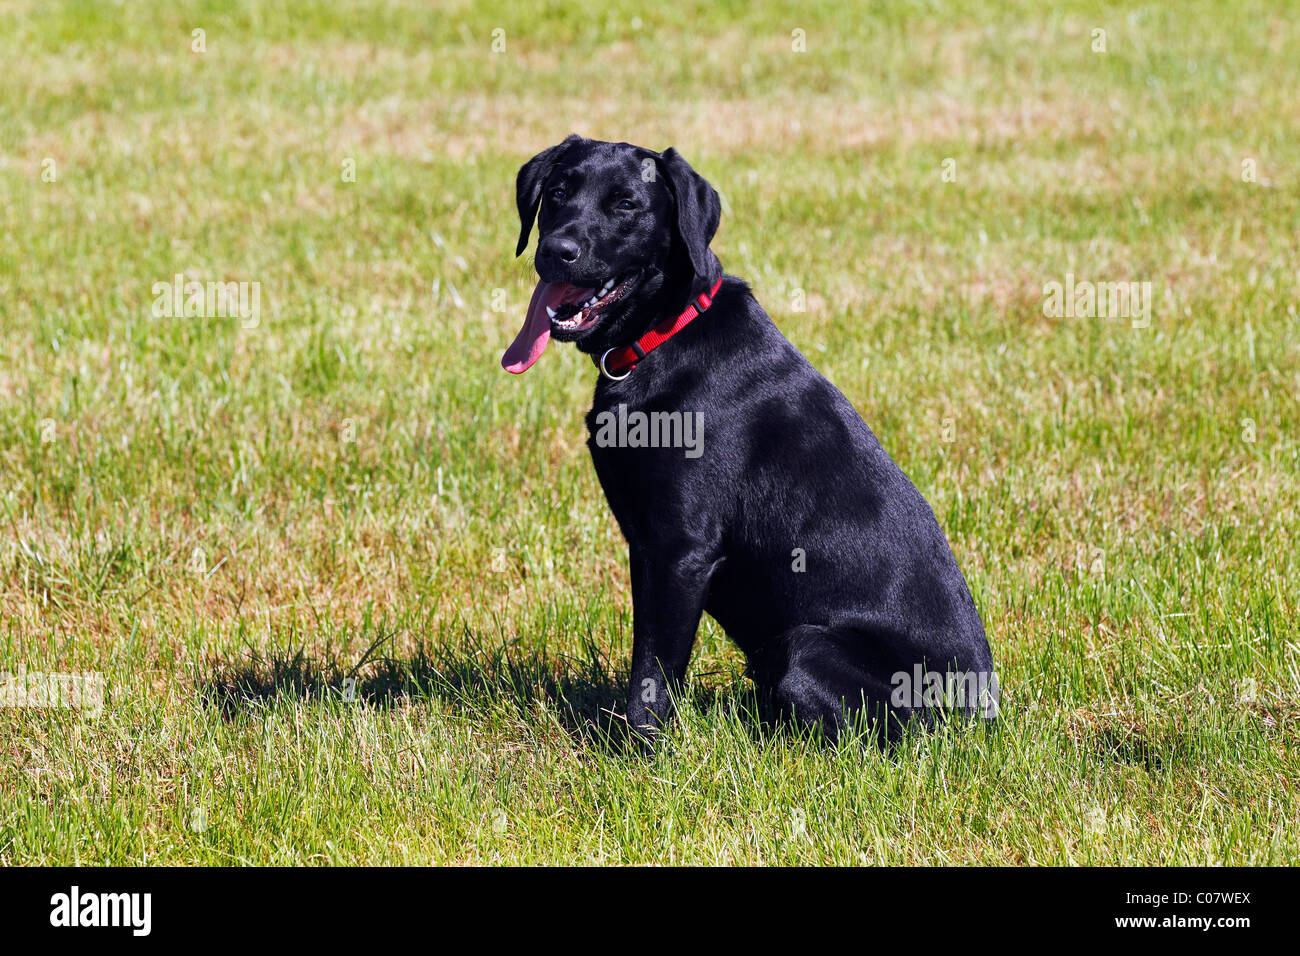 Black Lab Dog Male Black Labrador Retriever Young Male Dog Panting With